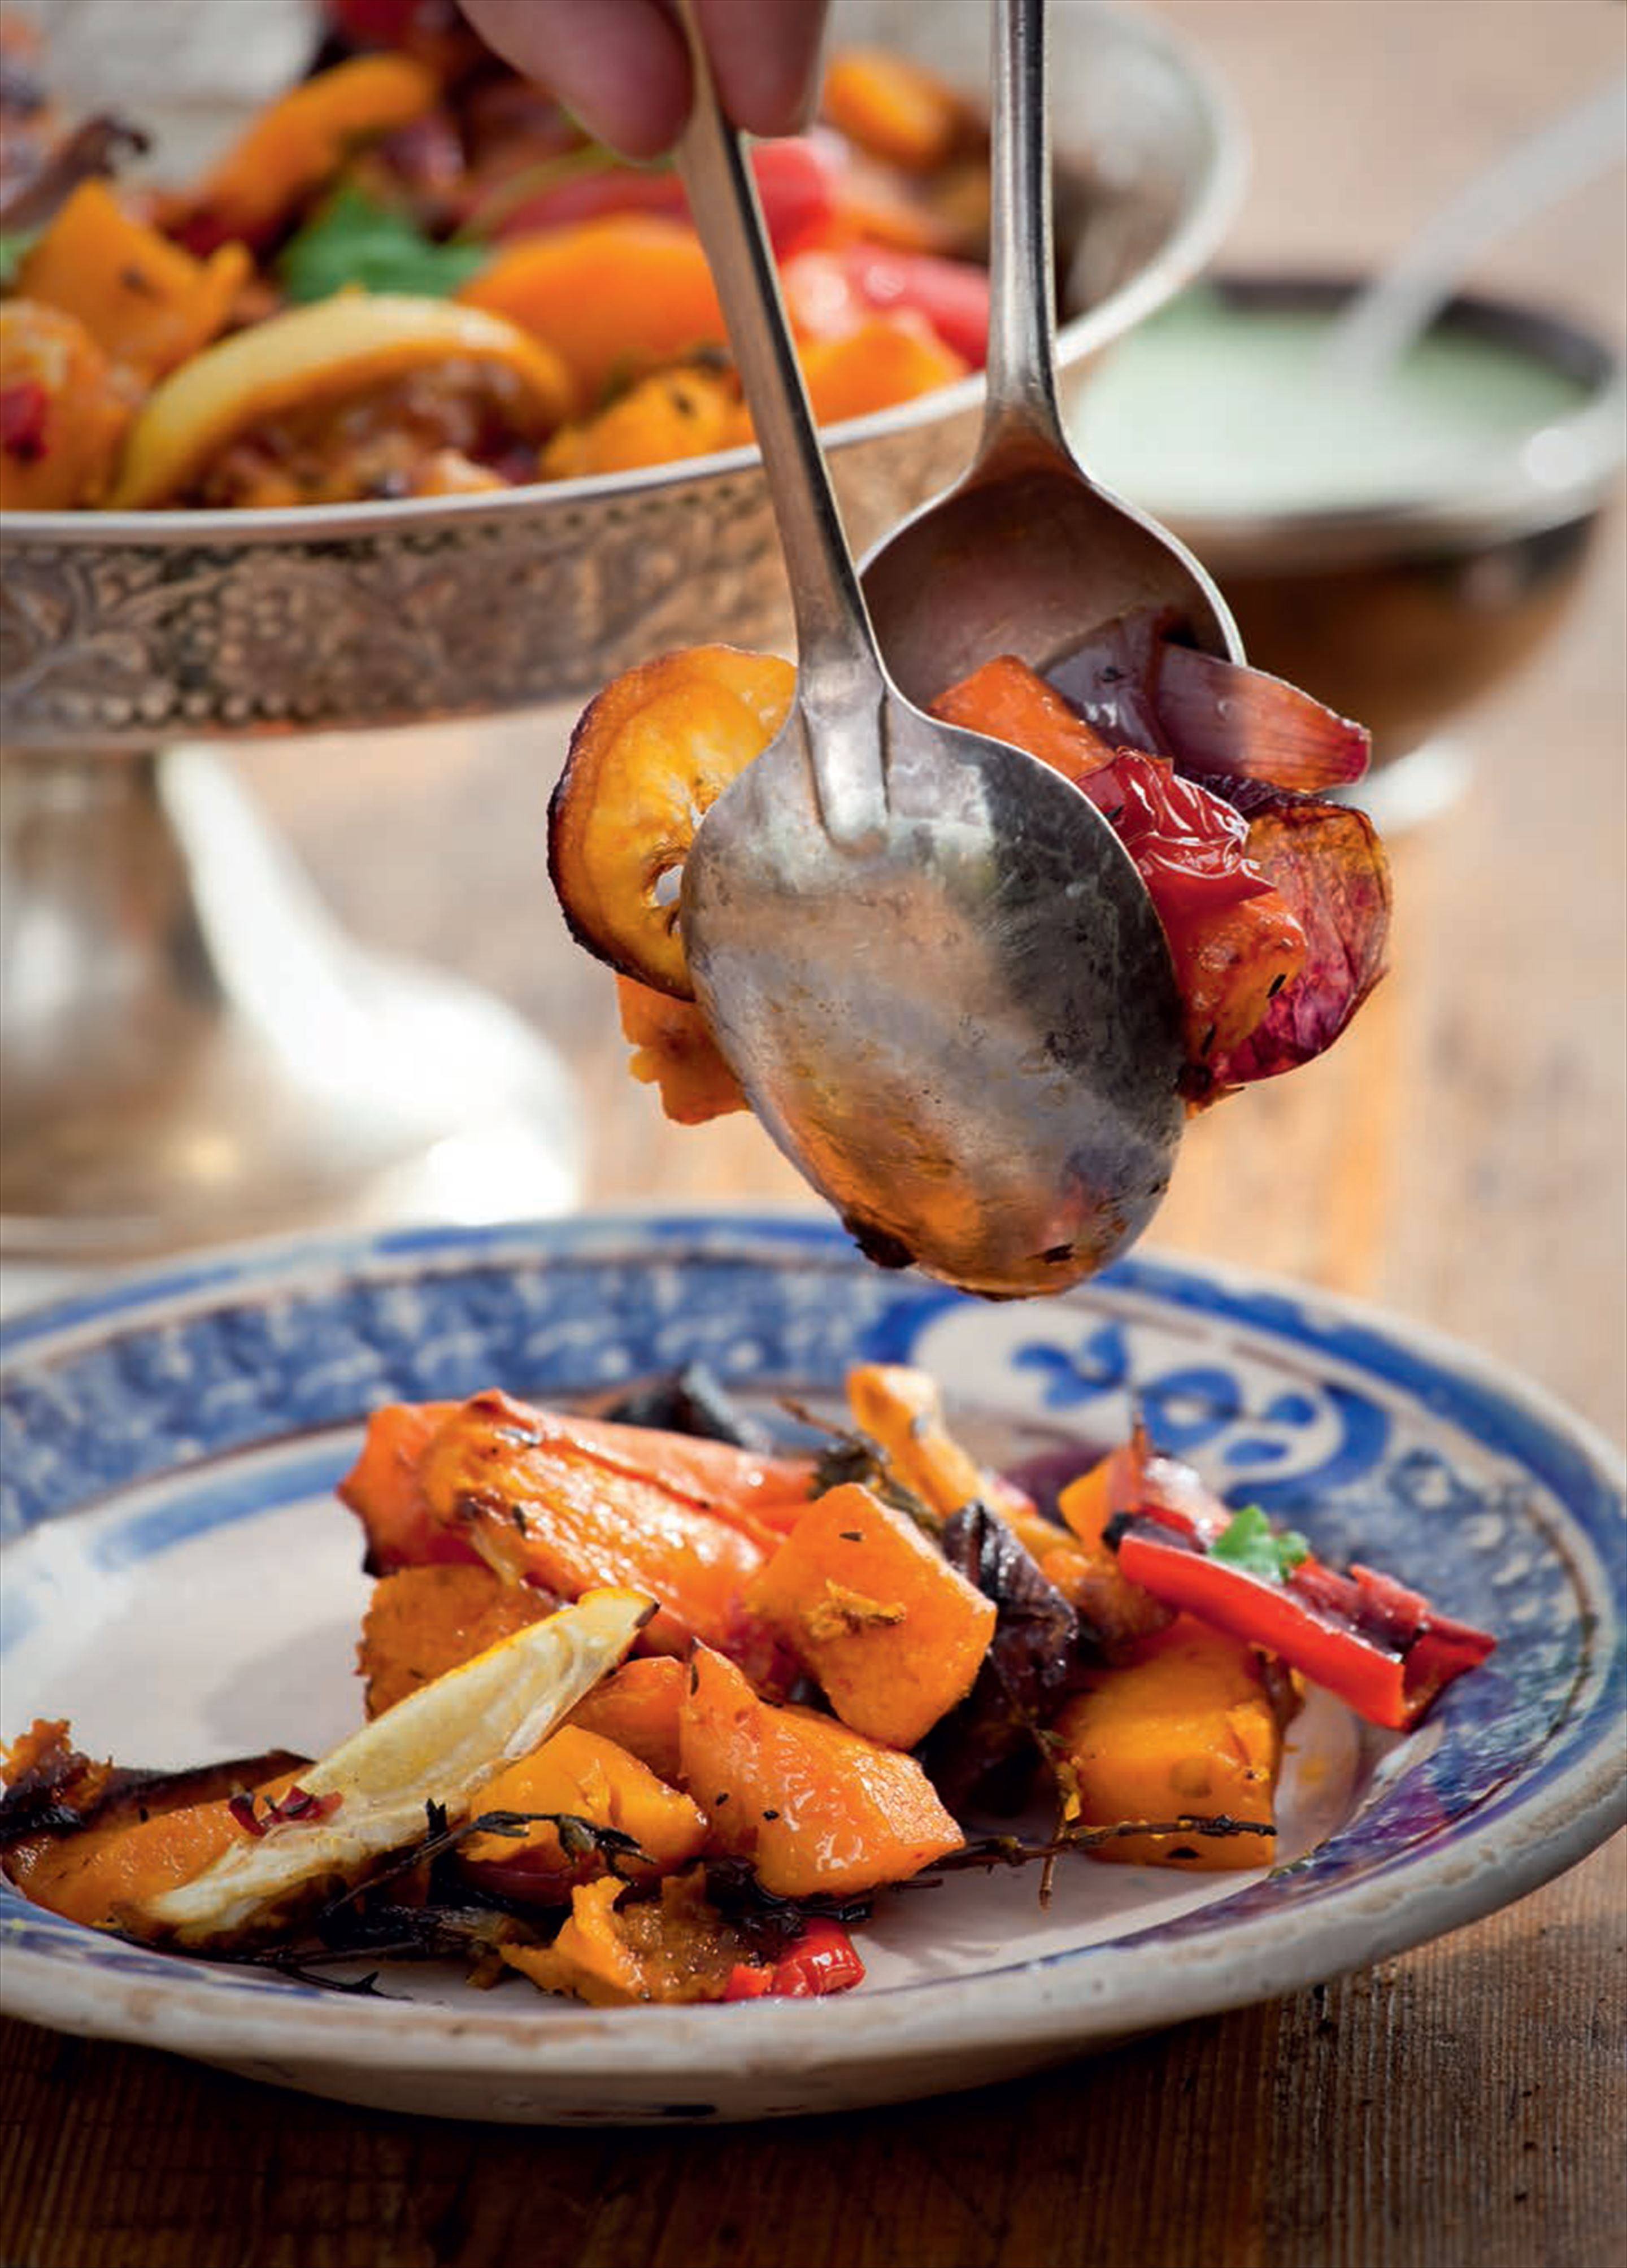 Autumn roasted vegetables